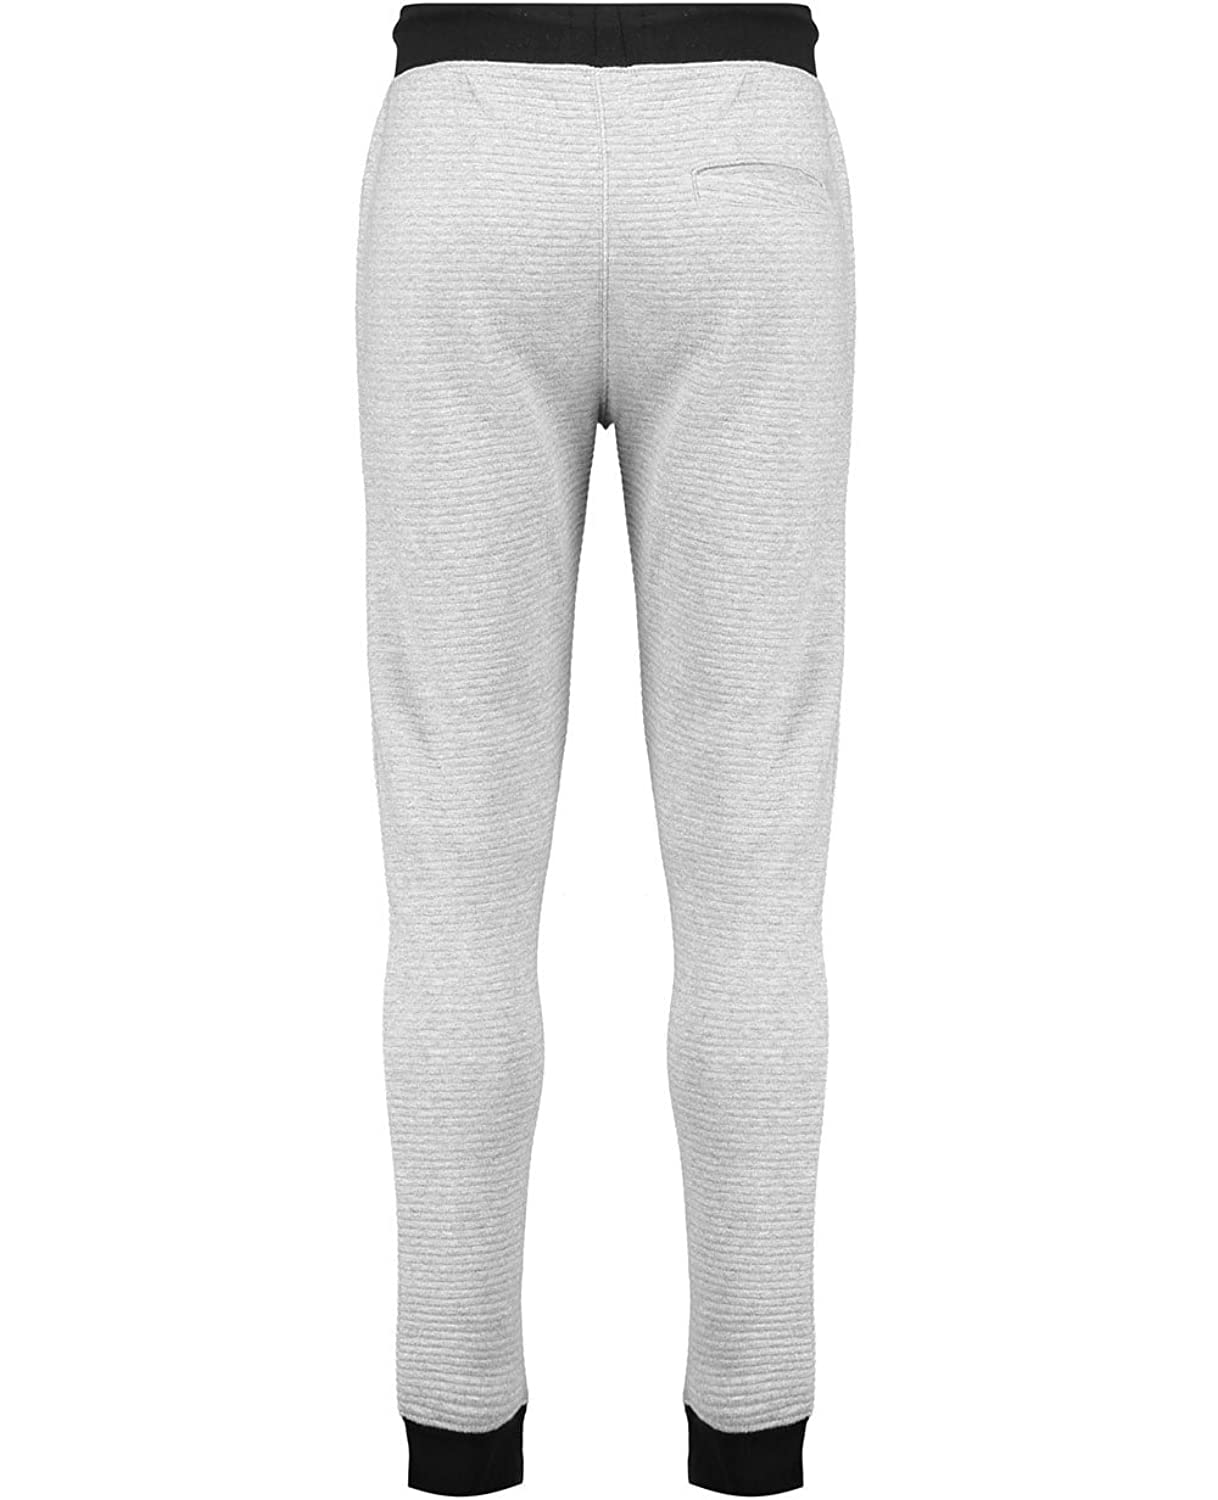 Twisted Soul Mens Marl Ottoman Cotton Mix Casual Sports Joggers Pants Trousers